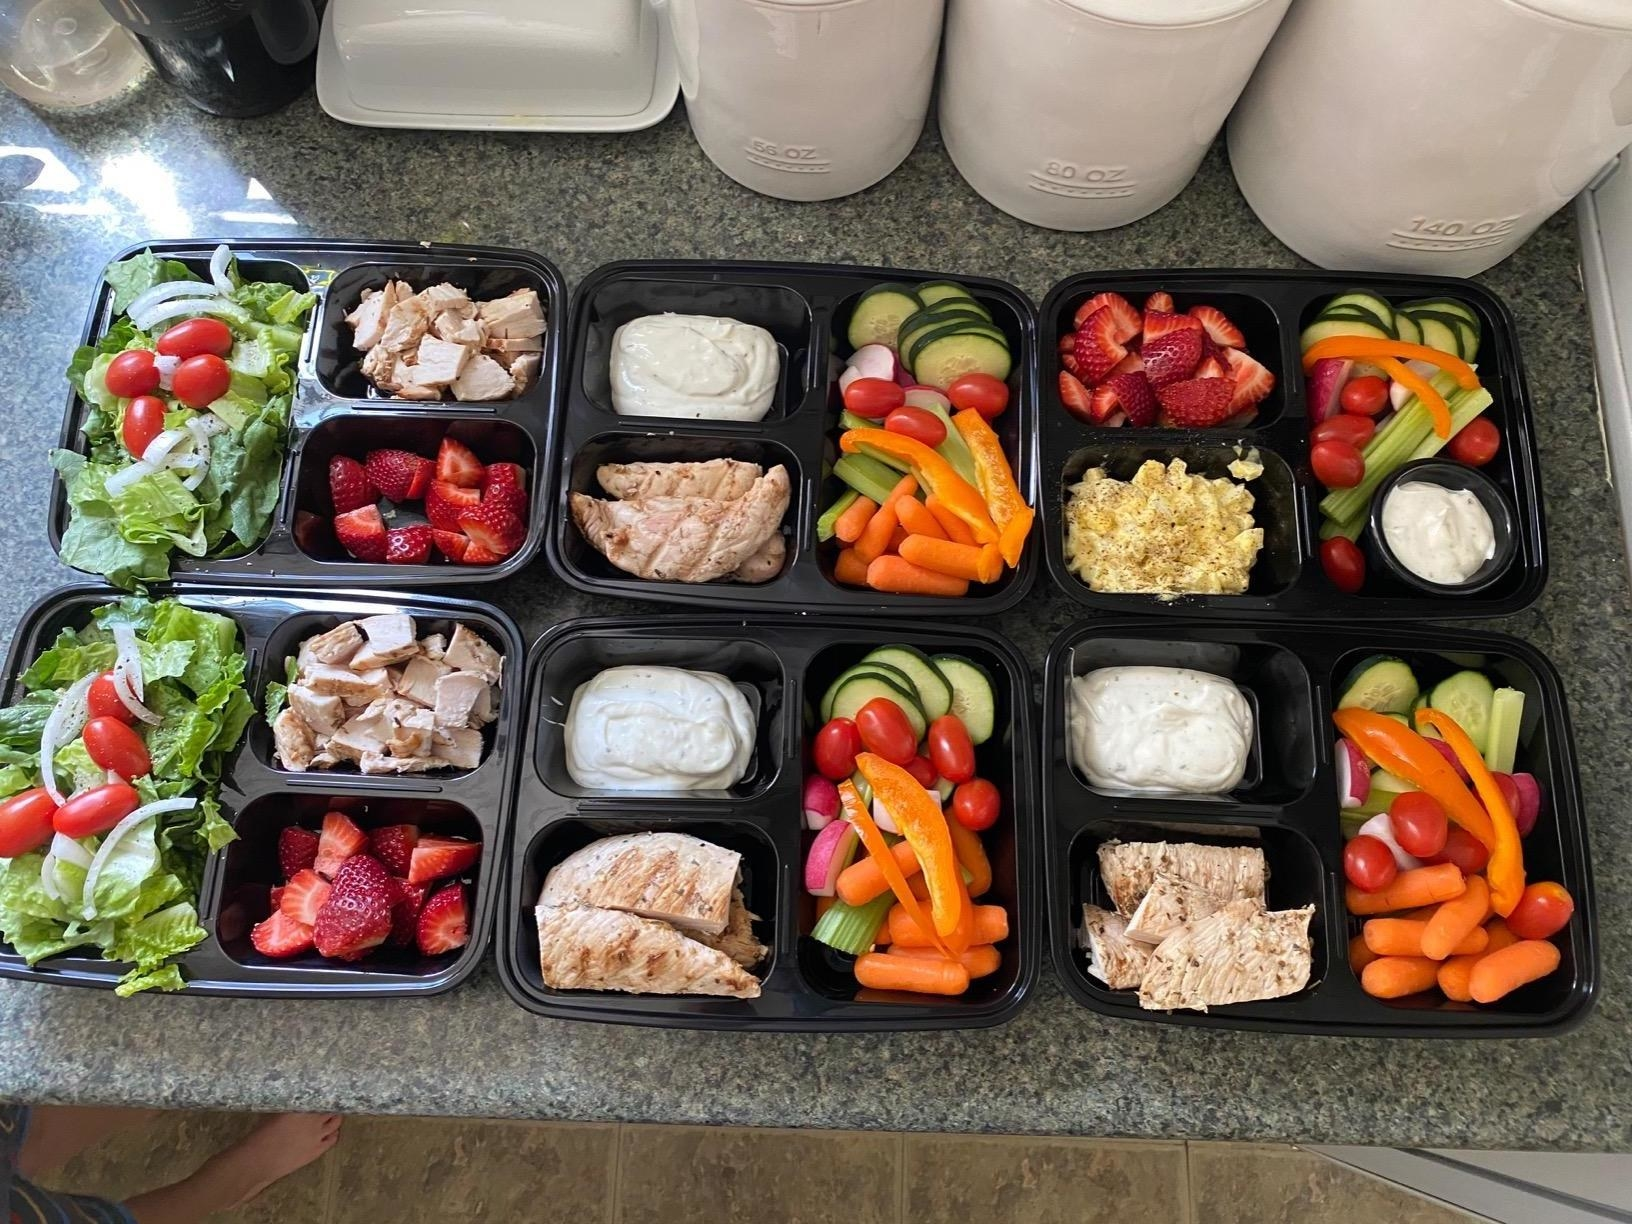 A reviewer showing the three-compartment containers holding meals they've prepared ahead